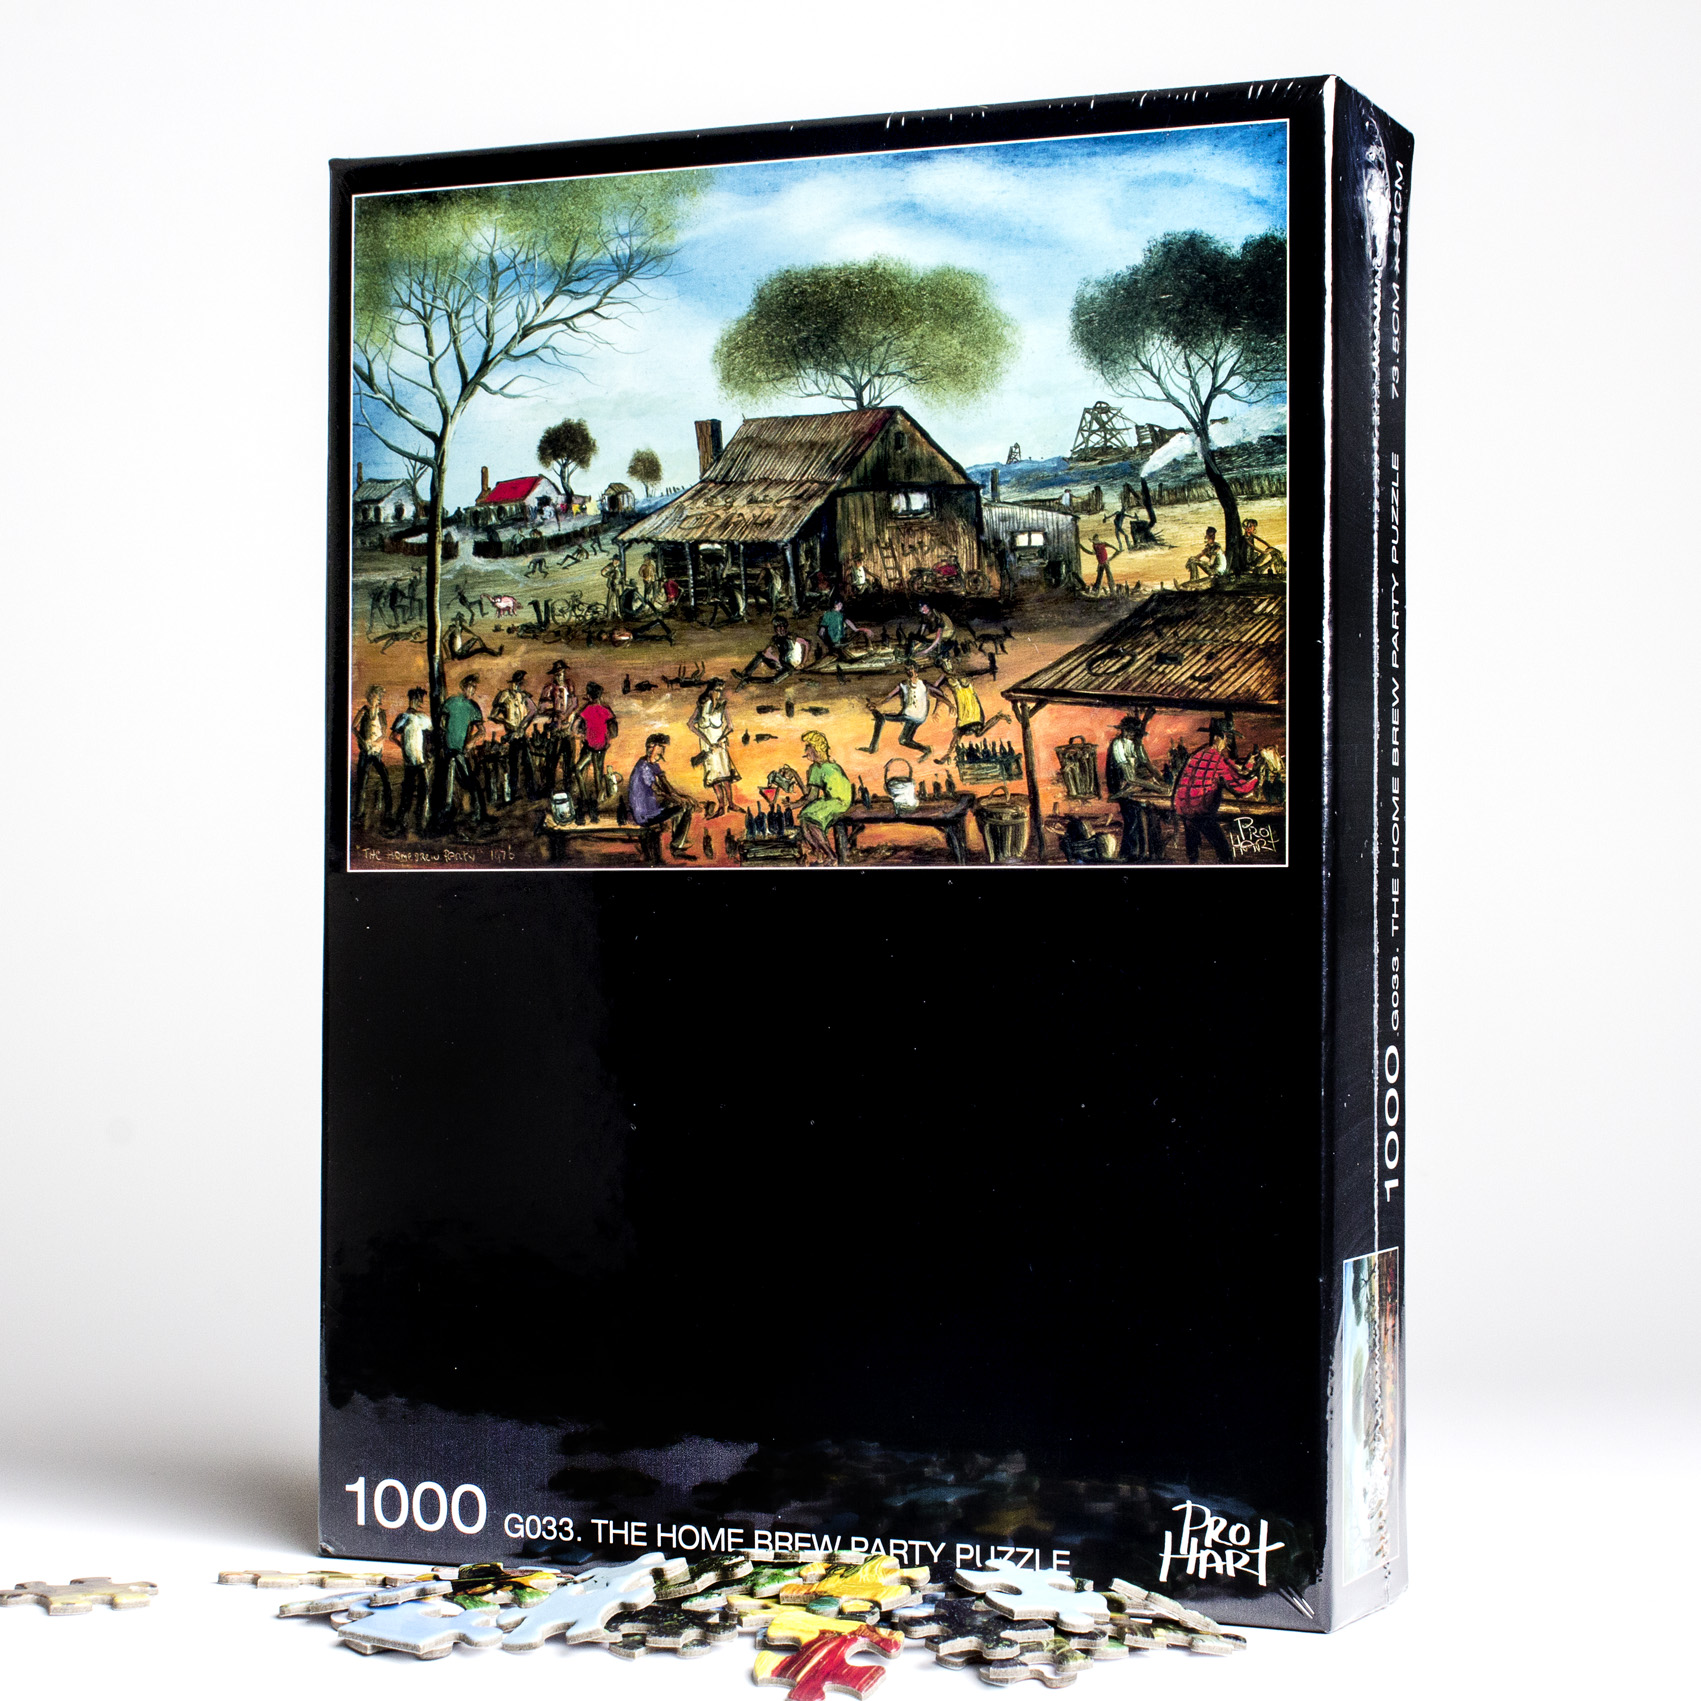 Home Brew Party Jigsaw Puzzle